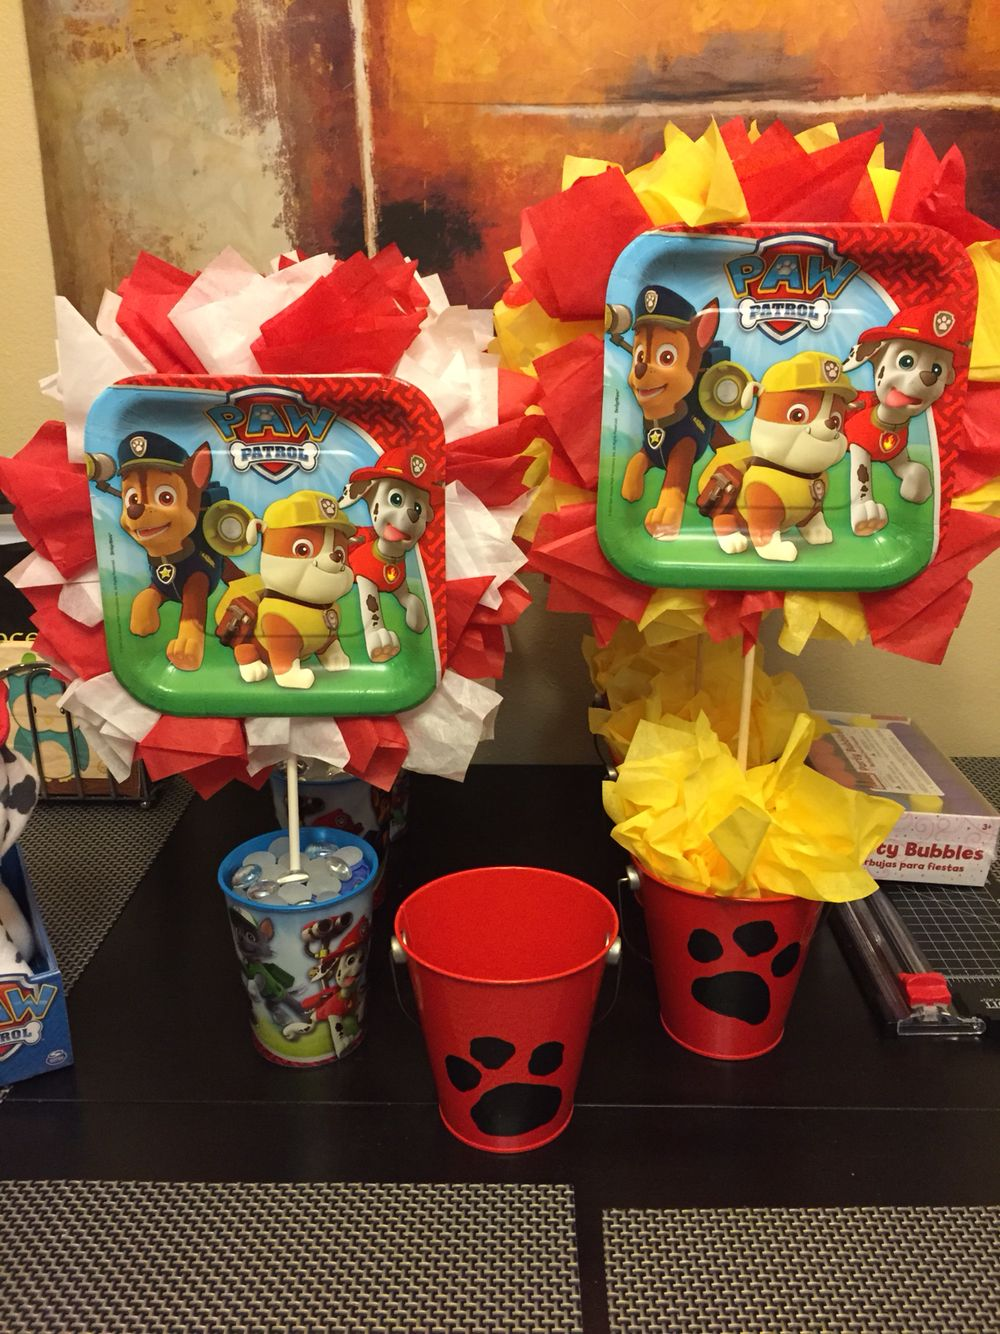 Sensational Paw Patrol Centerpiece Paper Plate And Tissue Centerpieces Download Free Architecture Designs Scobabritishbridgeorg